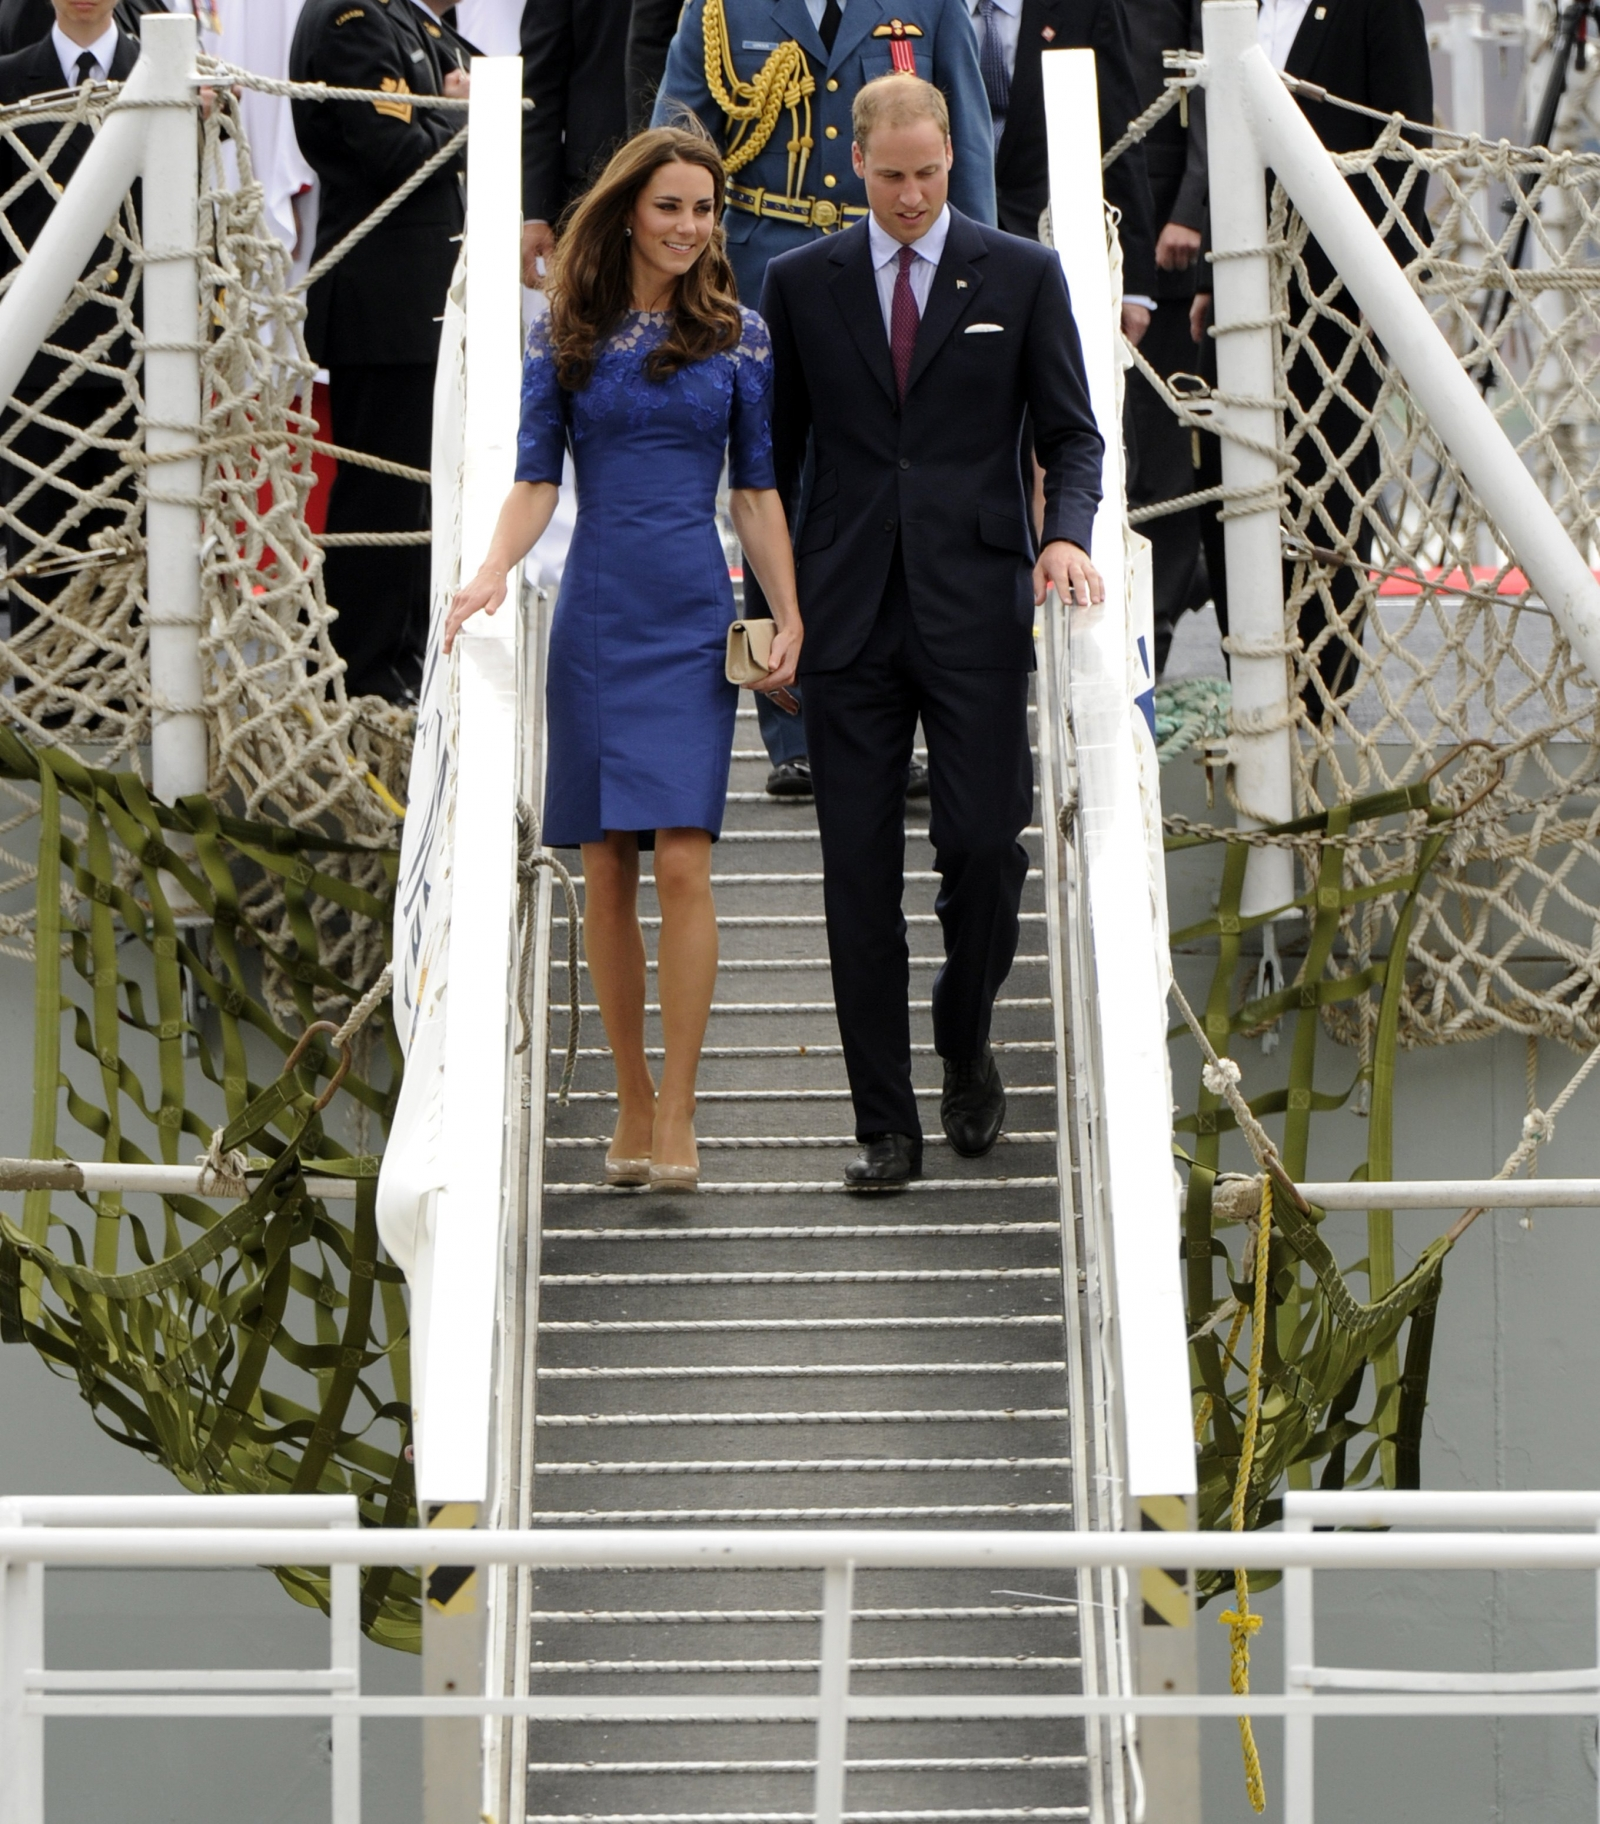 Royal tour of Canada